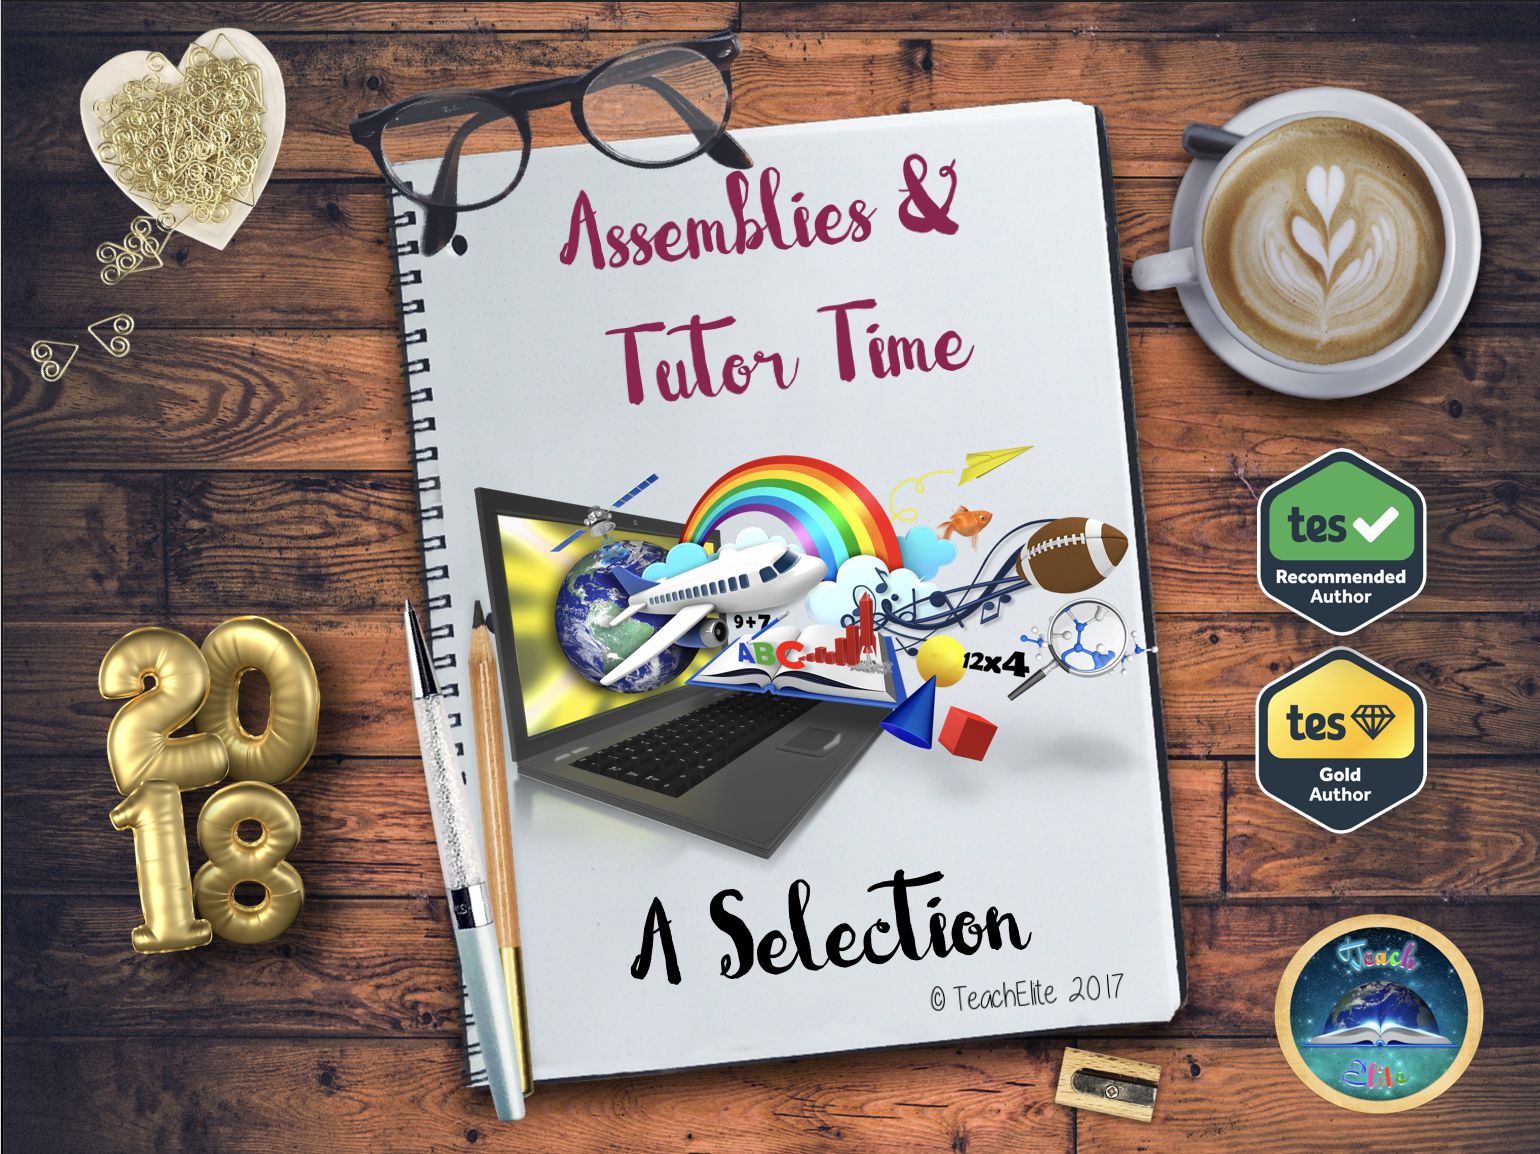 Assembly : Assembly & Tutor Time